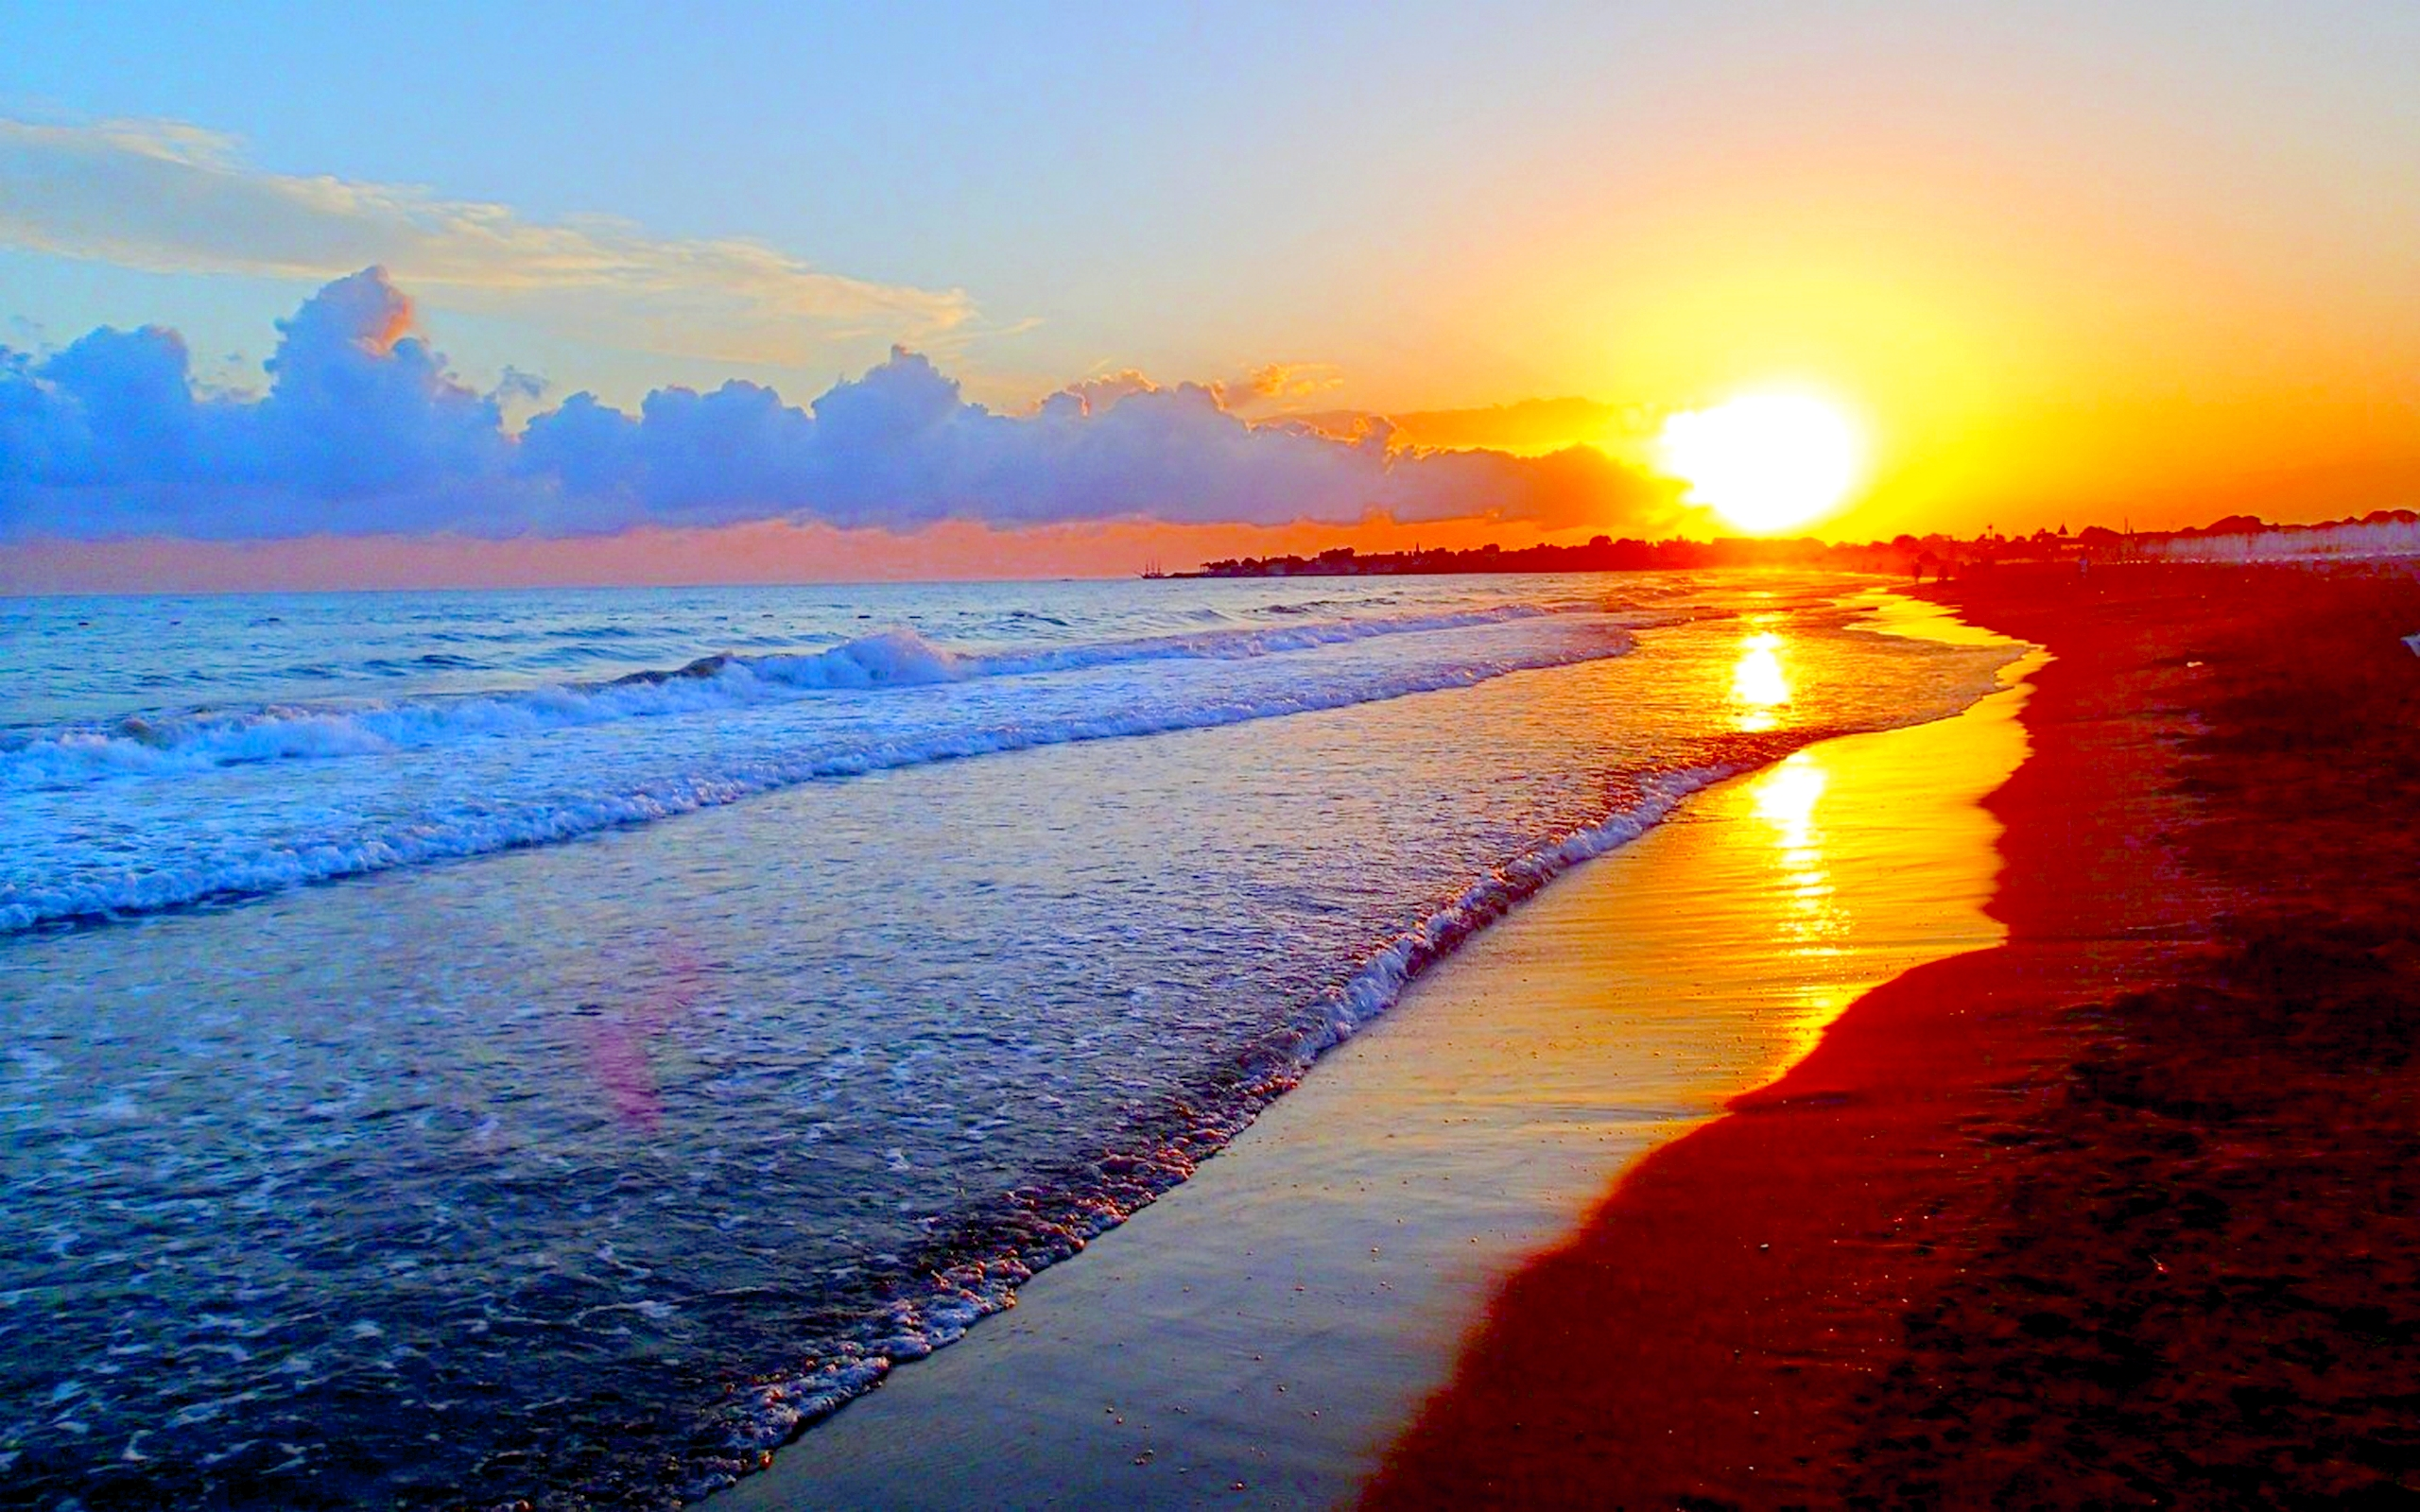 Sunset Desktop Wallpapers   HD Wallpapers Backgrounds of Your Choice 2560x1600